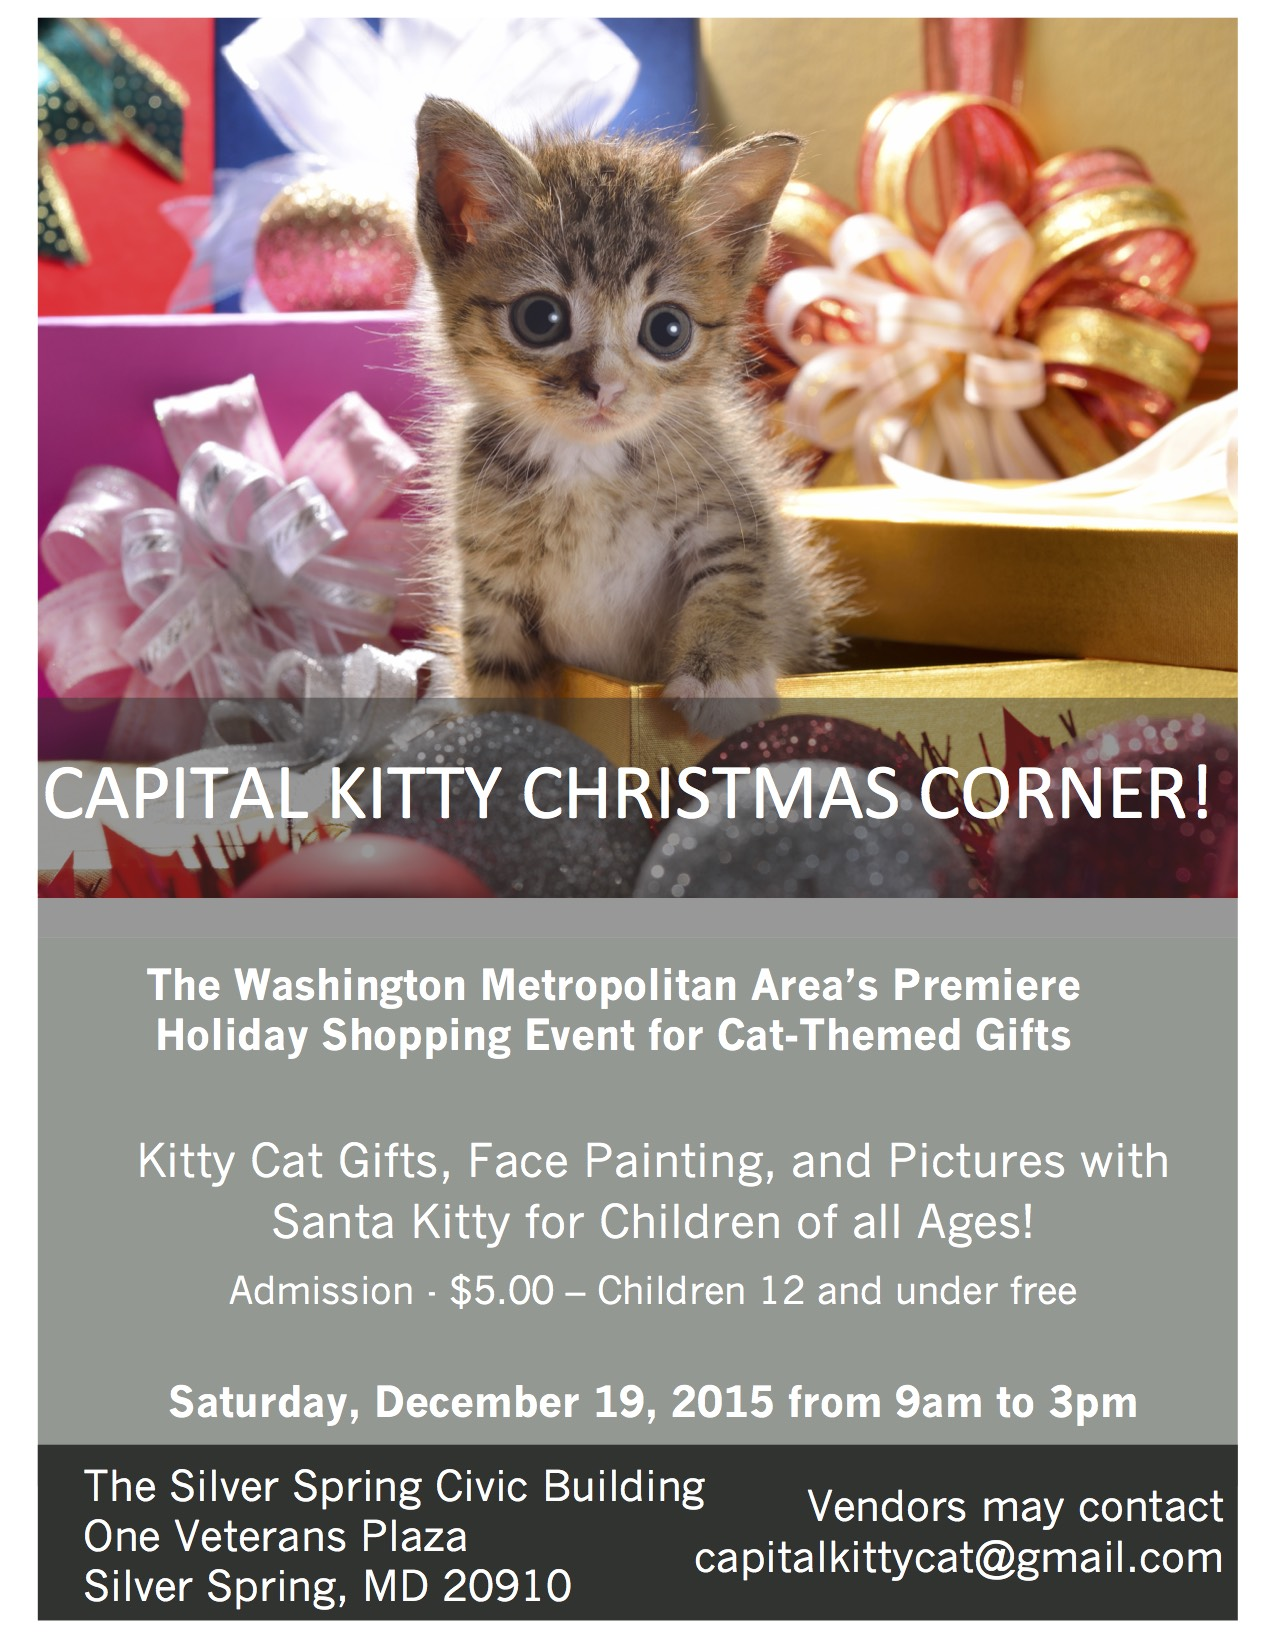 The Capital Kitty Christmas Corner at Silver Spring Civic Building ...